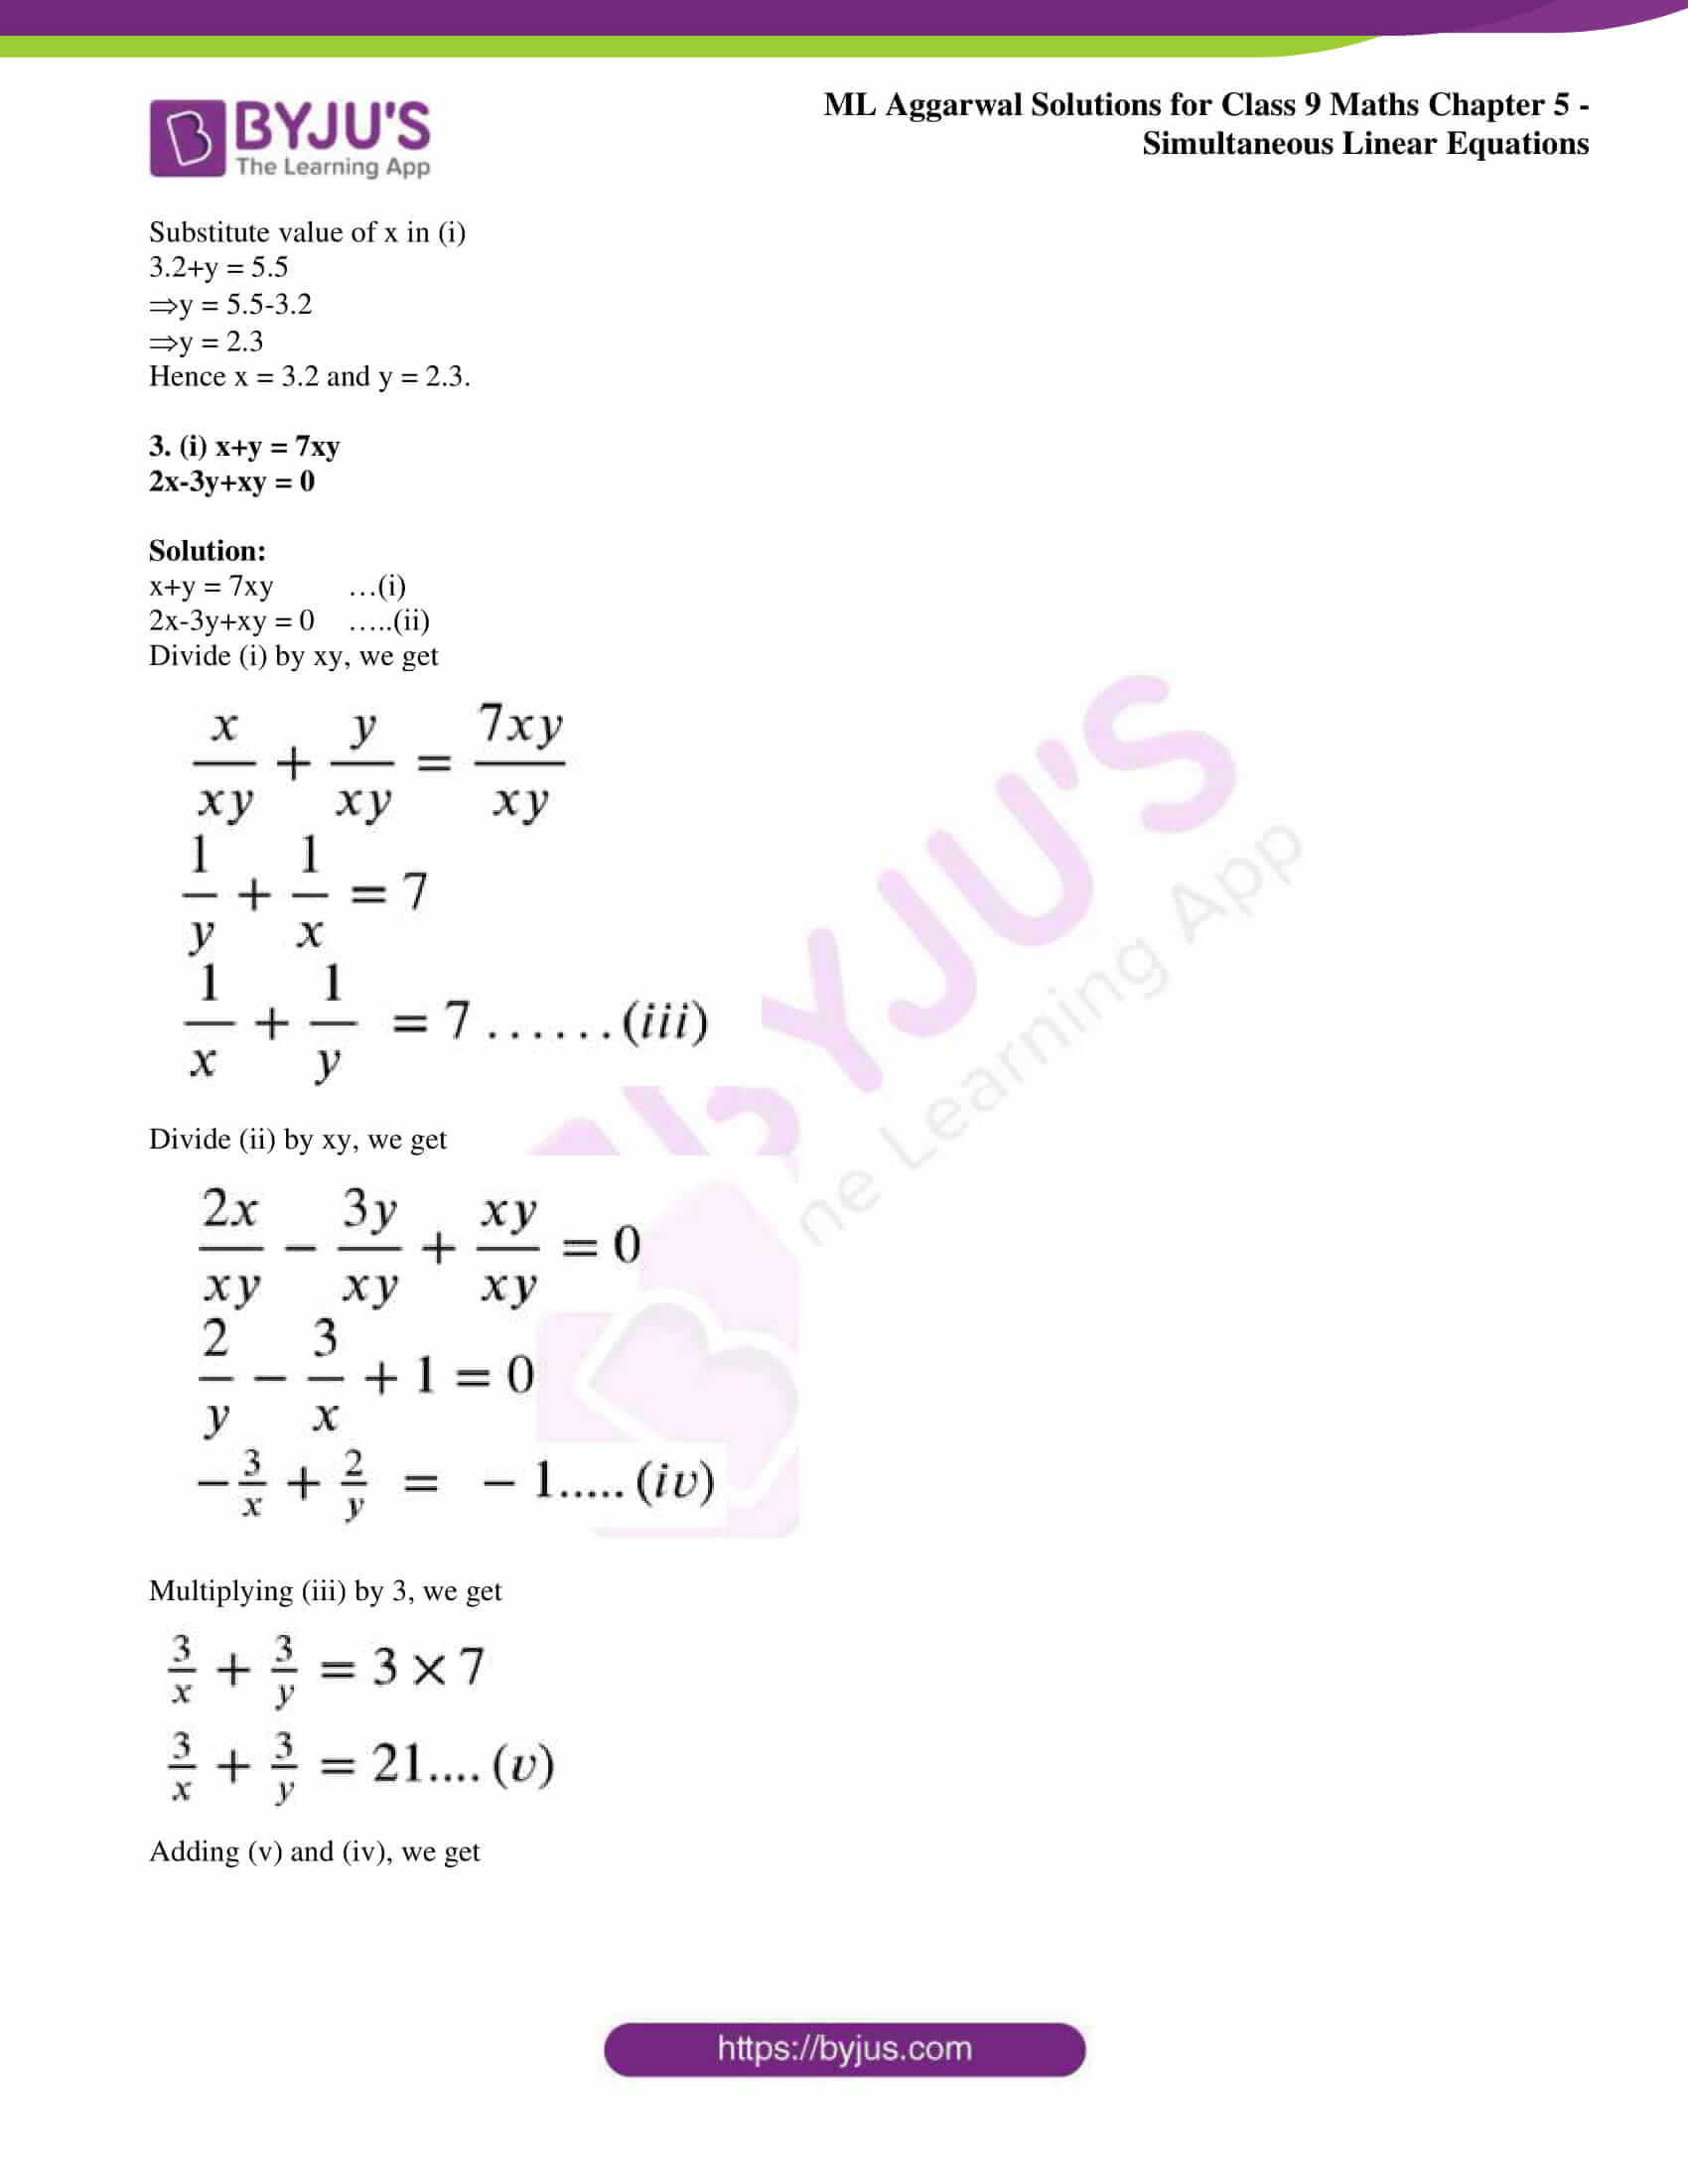 ml aggarwal solutions for class 9 maths chapter 5 32